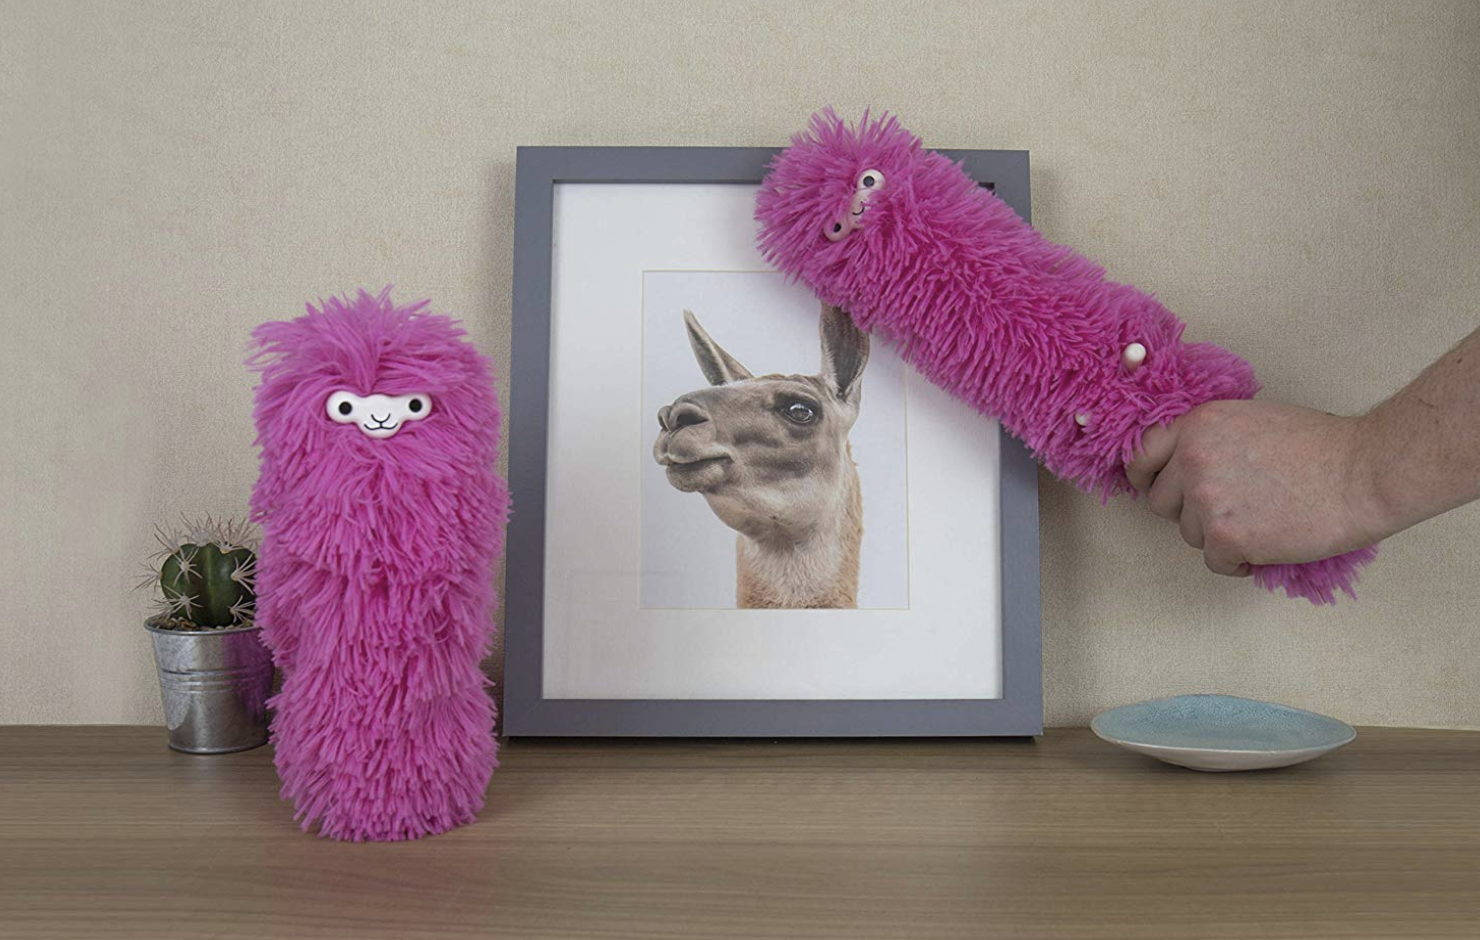 Pink llama-shaped dusters in front of llama art print on top of a table